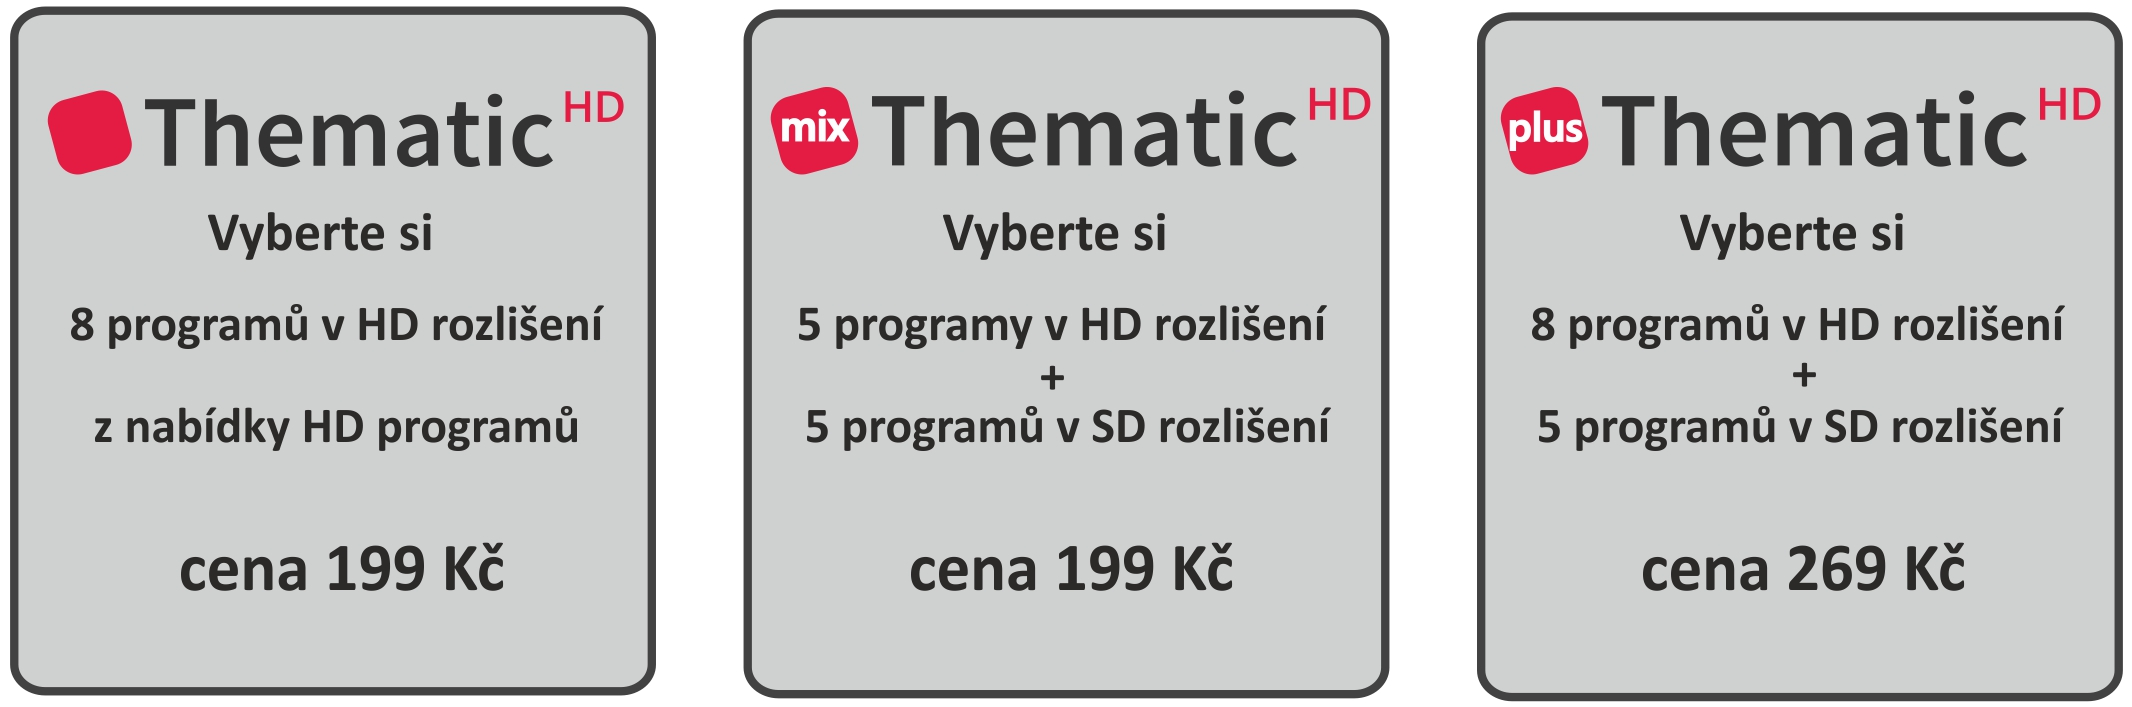 Thematic 8HD - 3 tlacitka_FixPro_2016